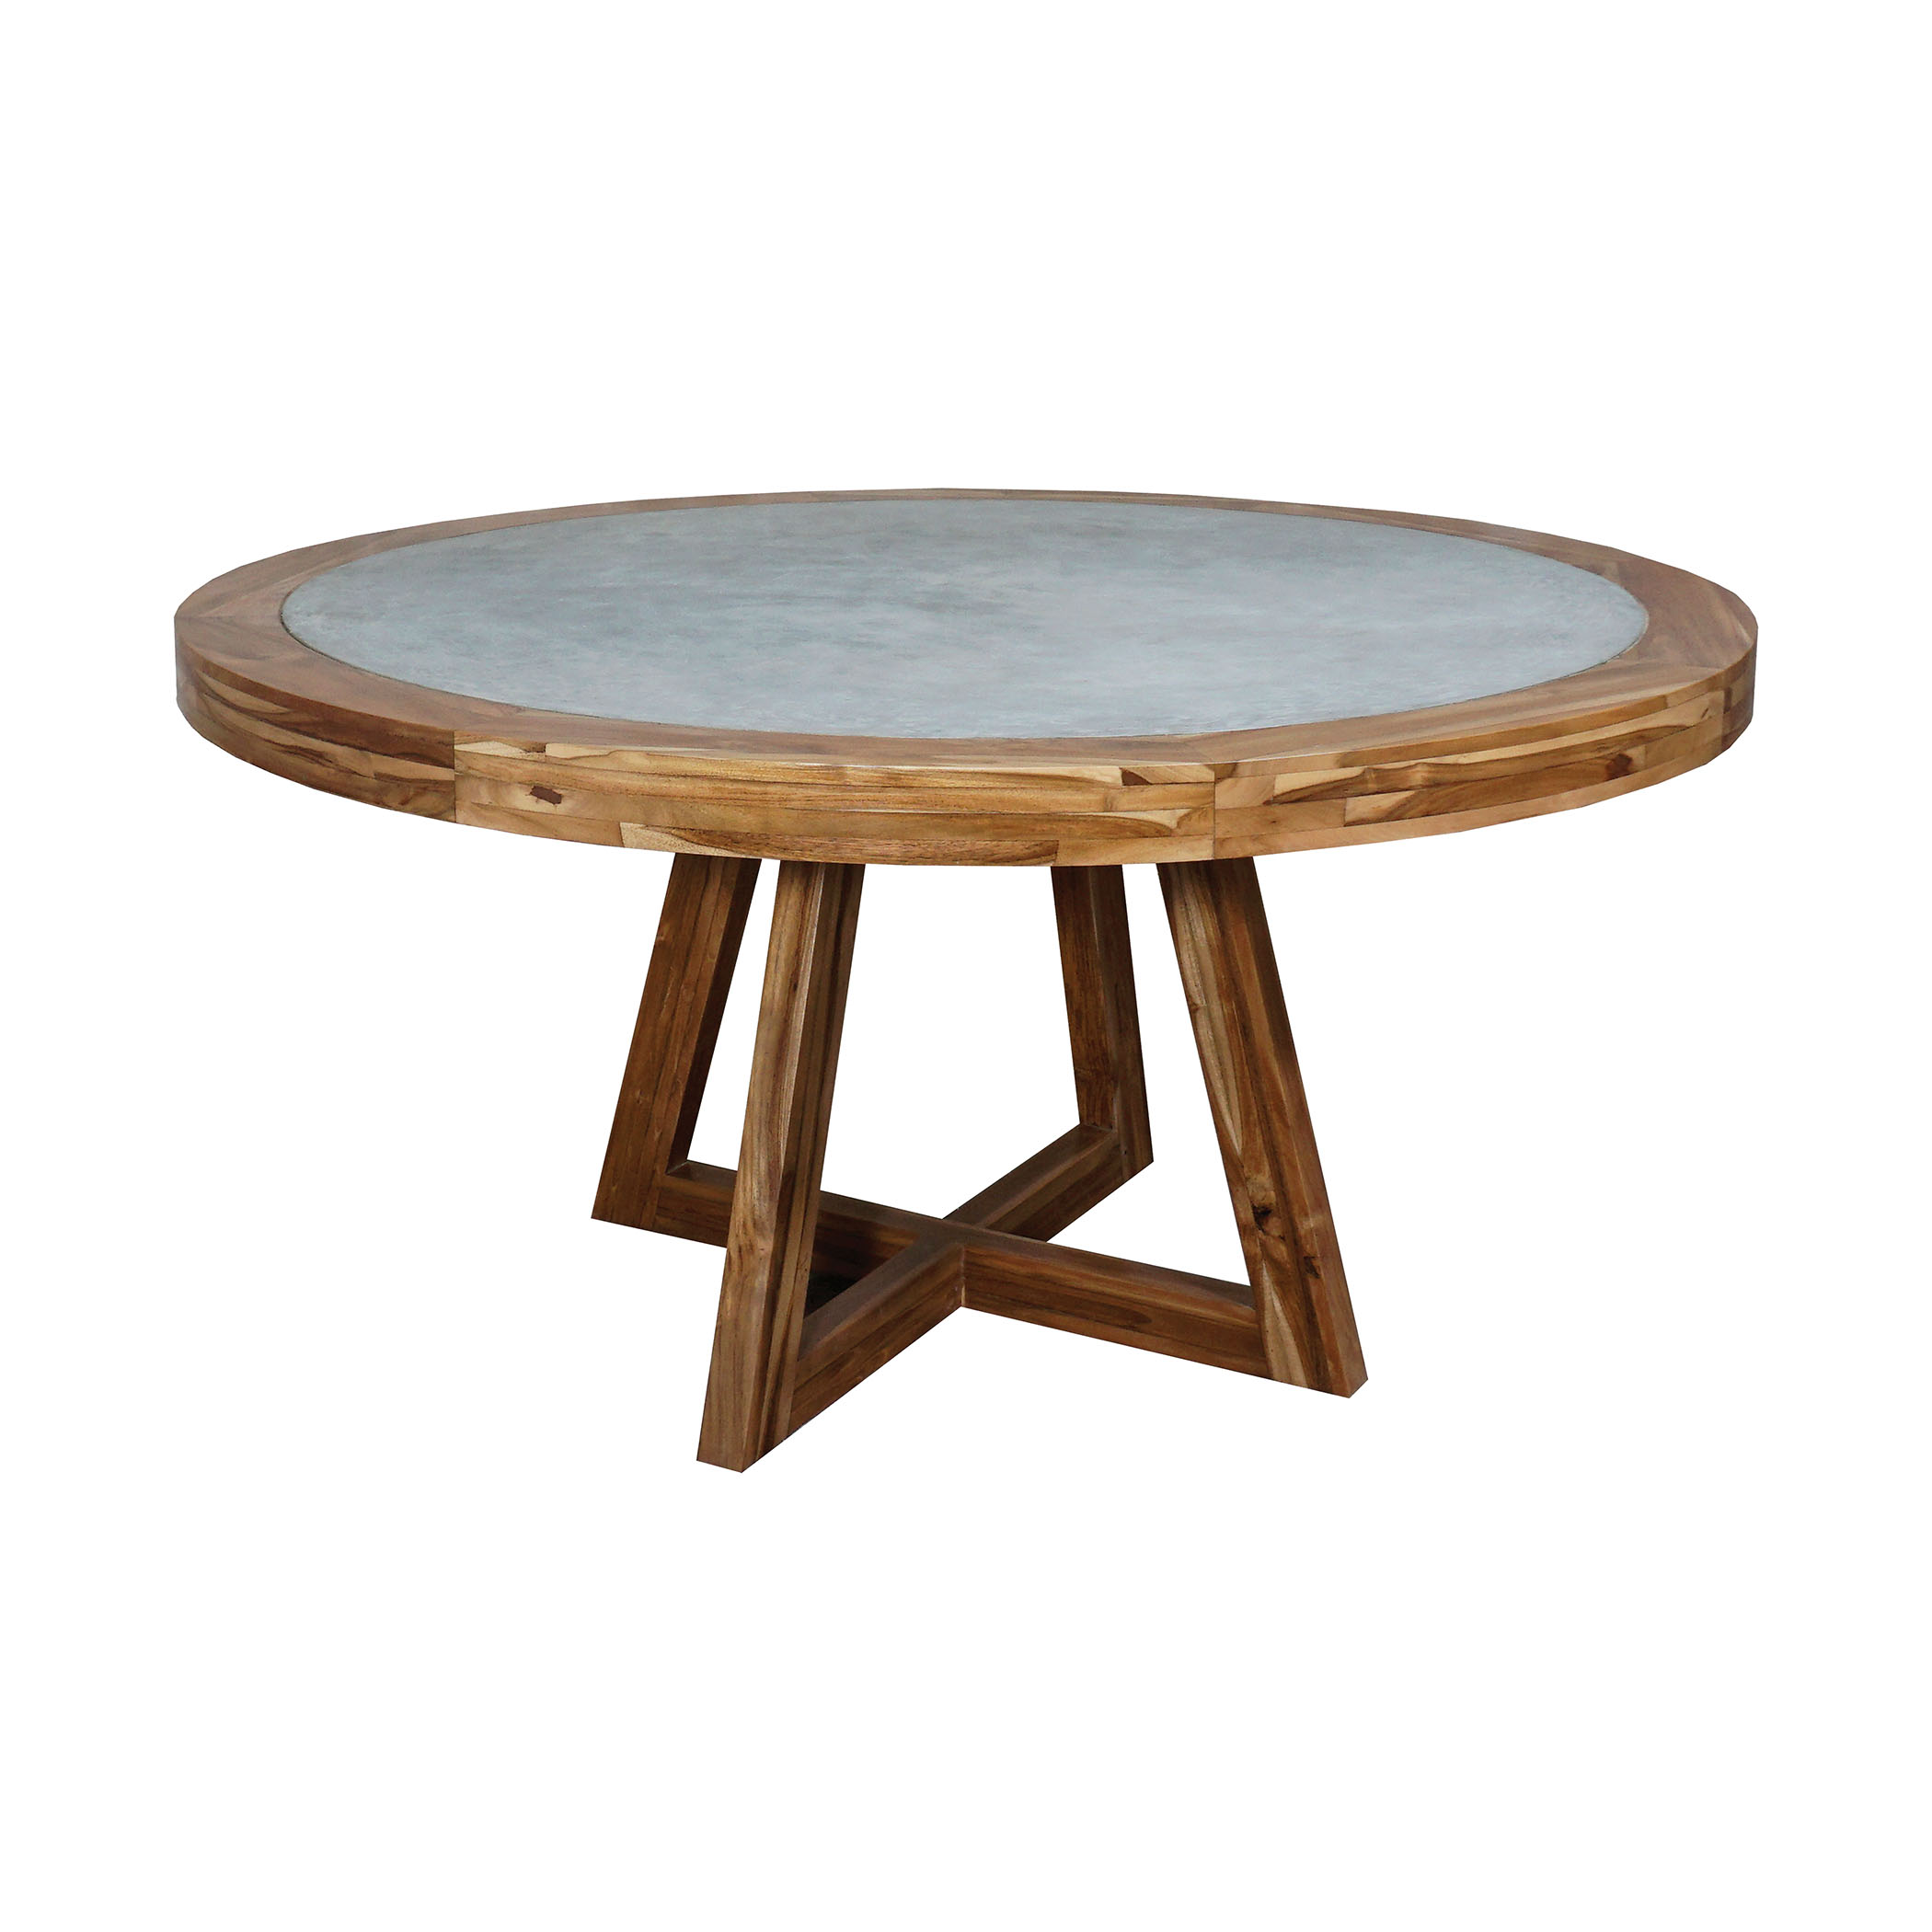 Orchard Dining Table in Teak And Concrete 6118502 | ELK Home